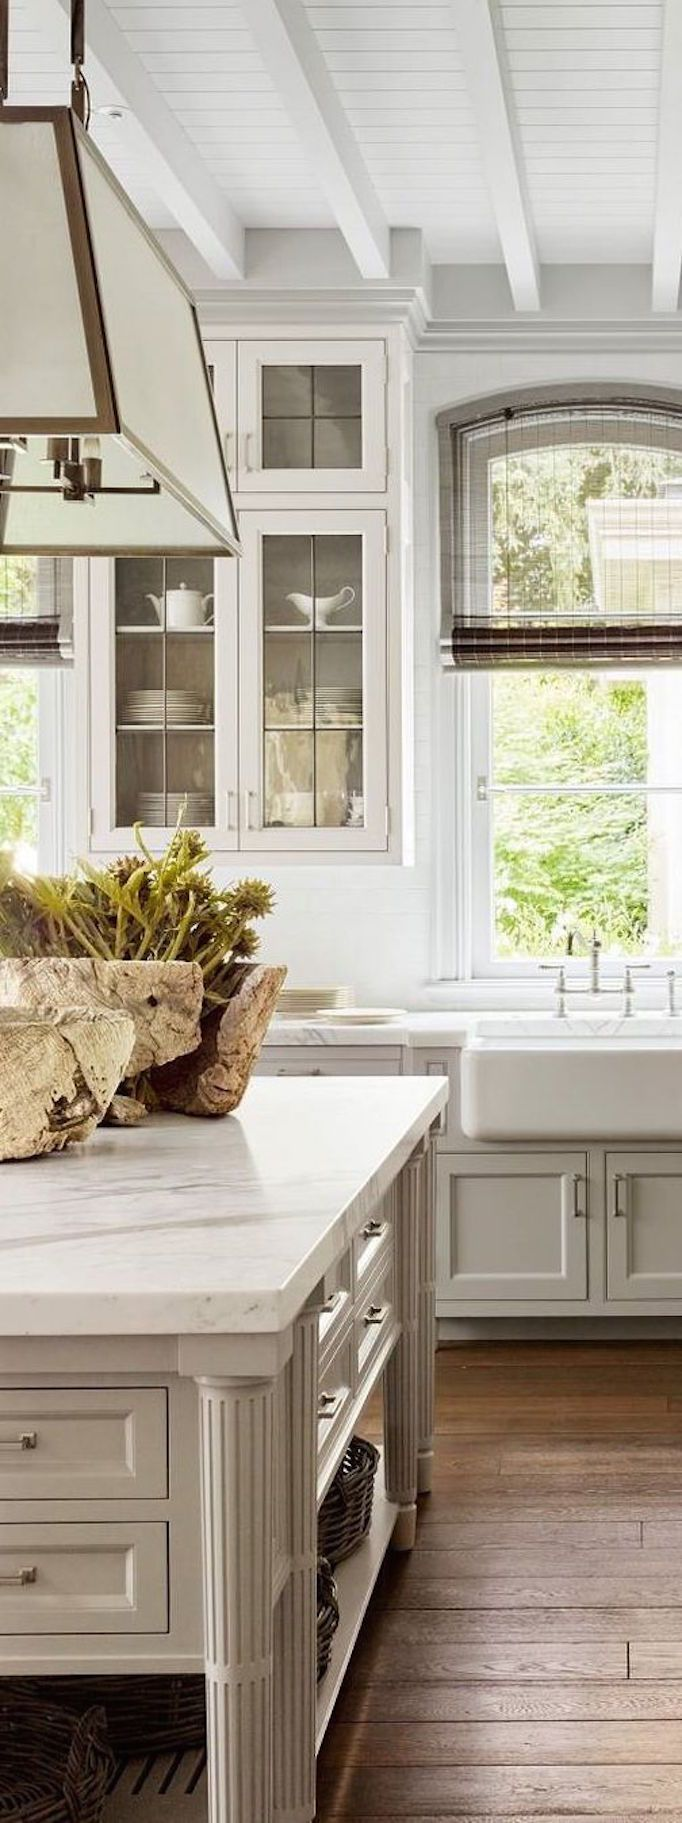 BECKI OWENS- 2017 Neutrals: Greige + Paint Guide gorgeous kitchen design